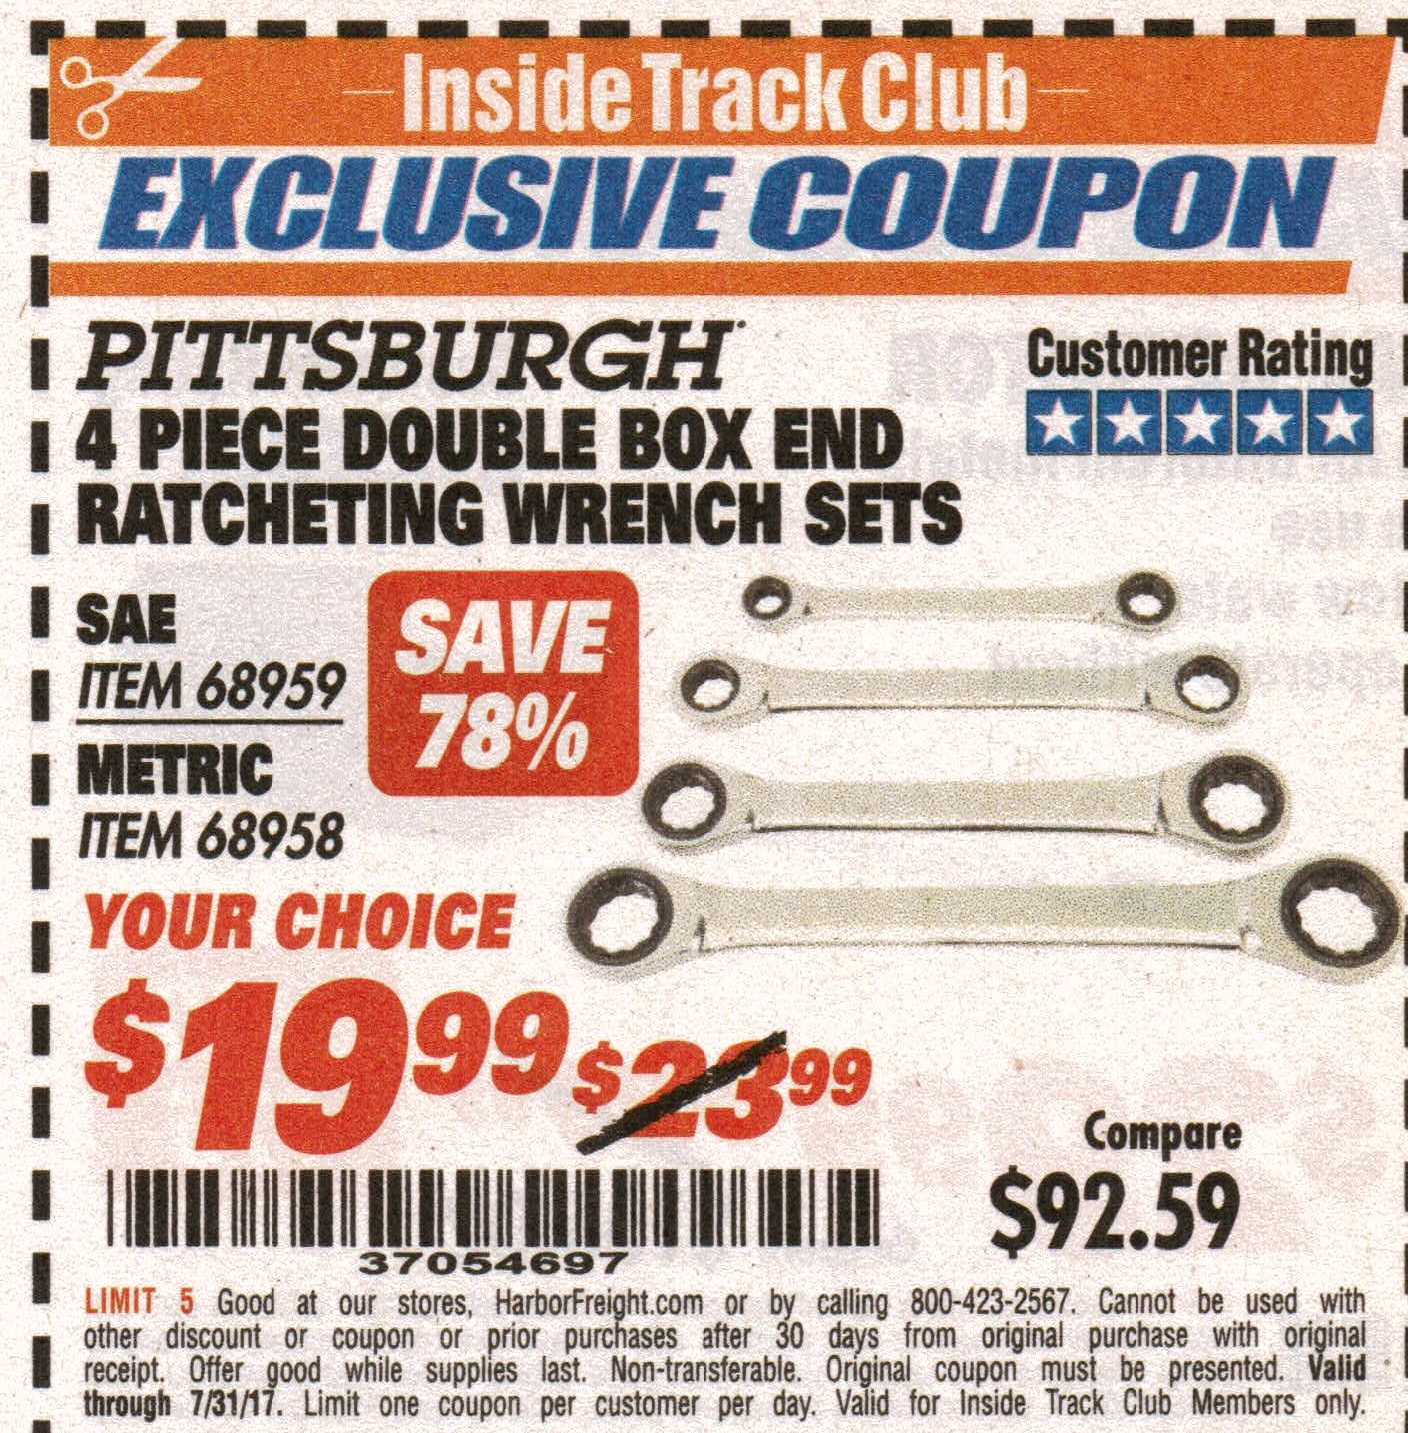 Harbor Freight 4 PIECE DOUBLE BOX END RATCHETING WRENCH SETS coupon